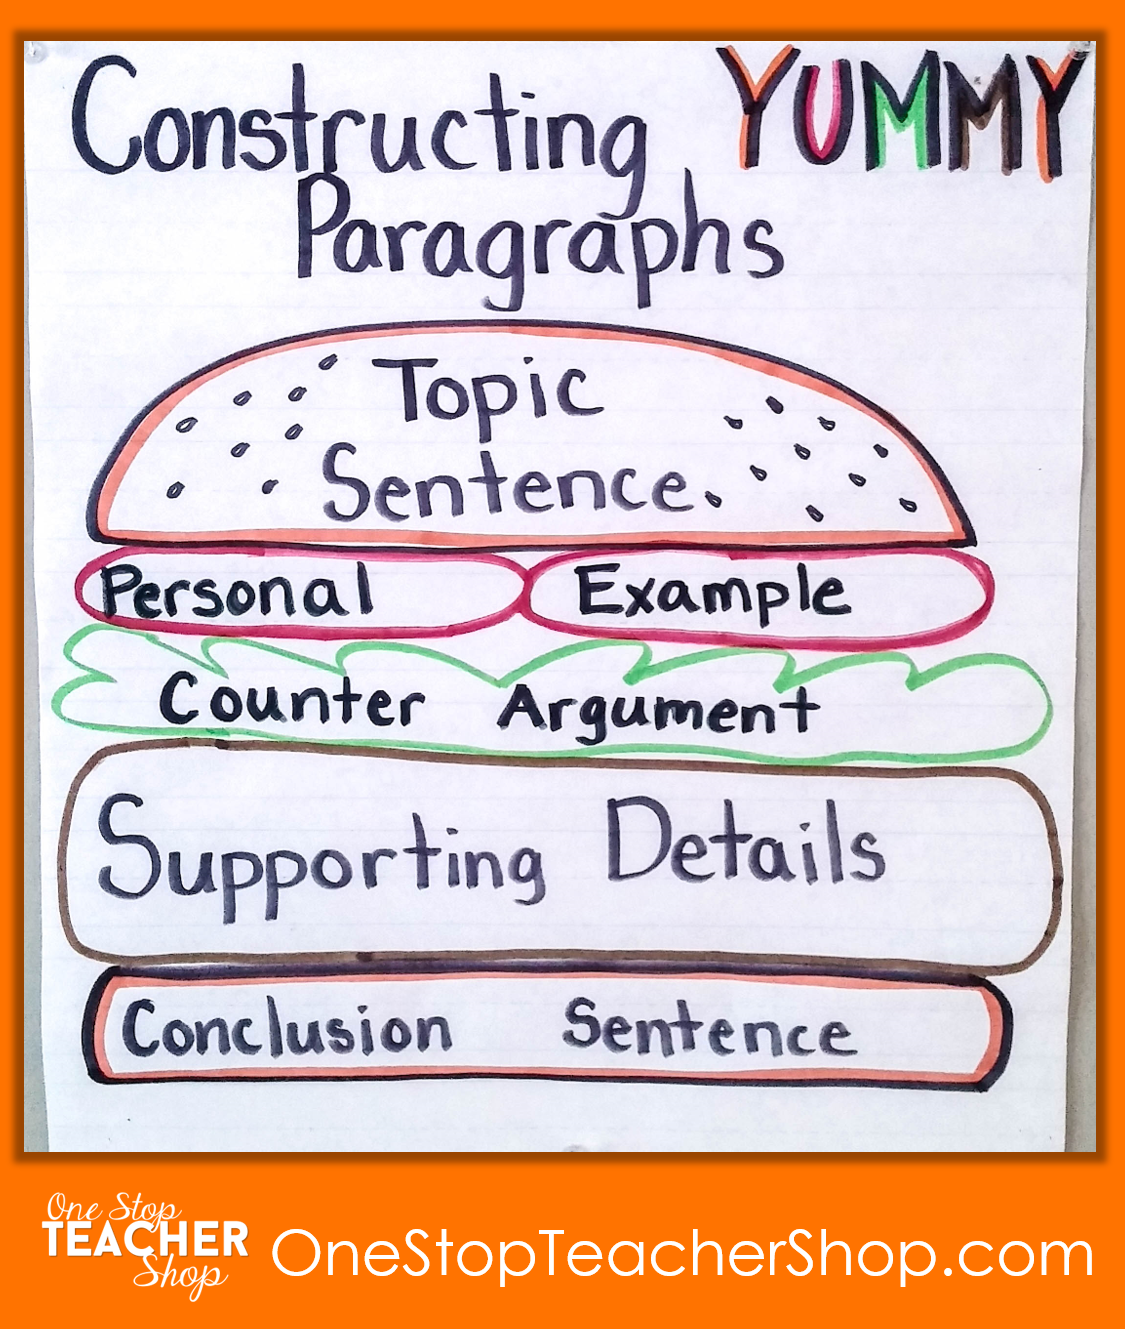 Paragraph Writing Anchor Chart - Check out my collection of anchor charts for math, reading, writing, and grammar. I love anchor charts even though I'm not so great at making them! Also, get some tips for using anchor charts effectively in your classroom.